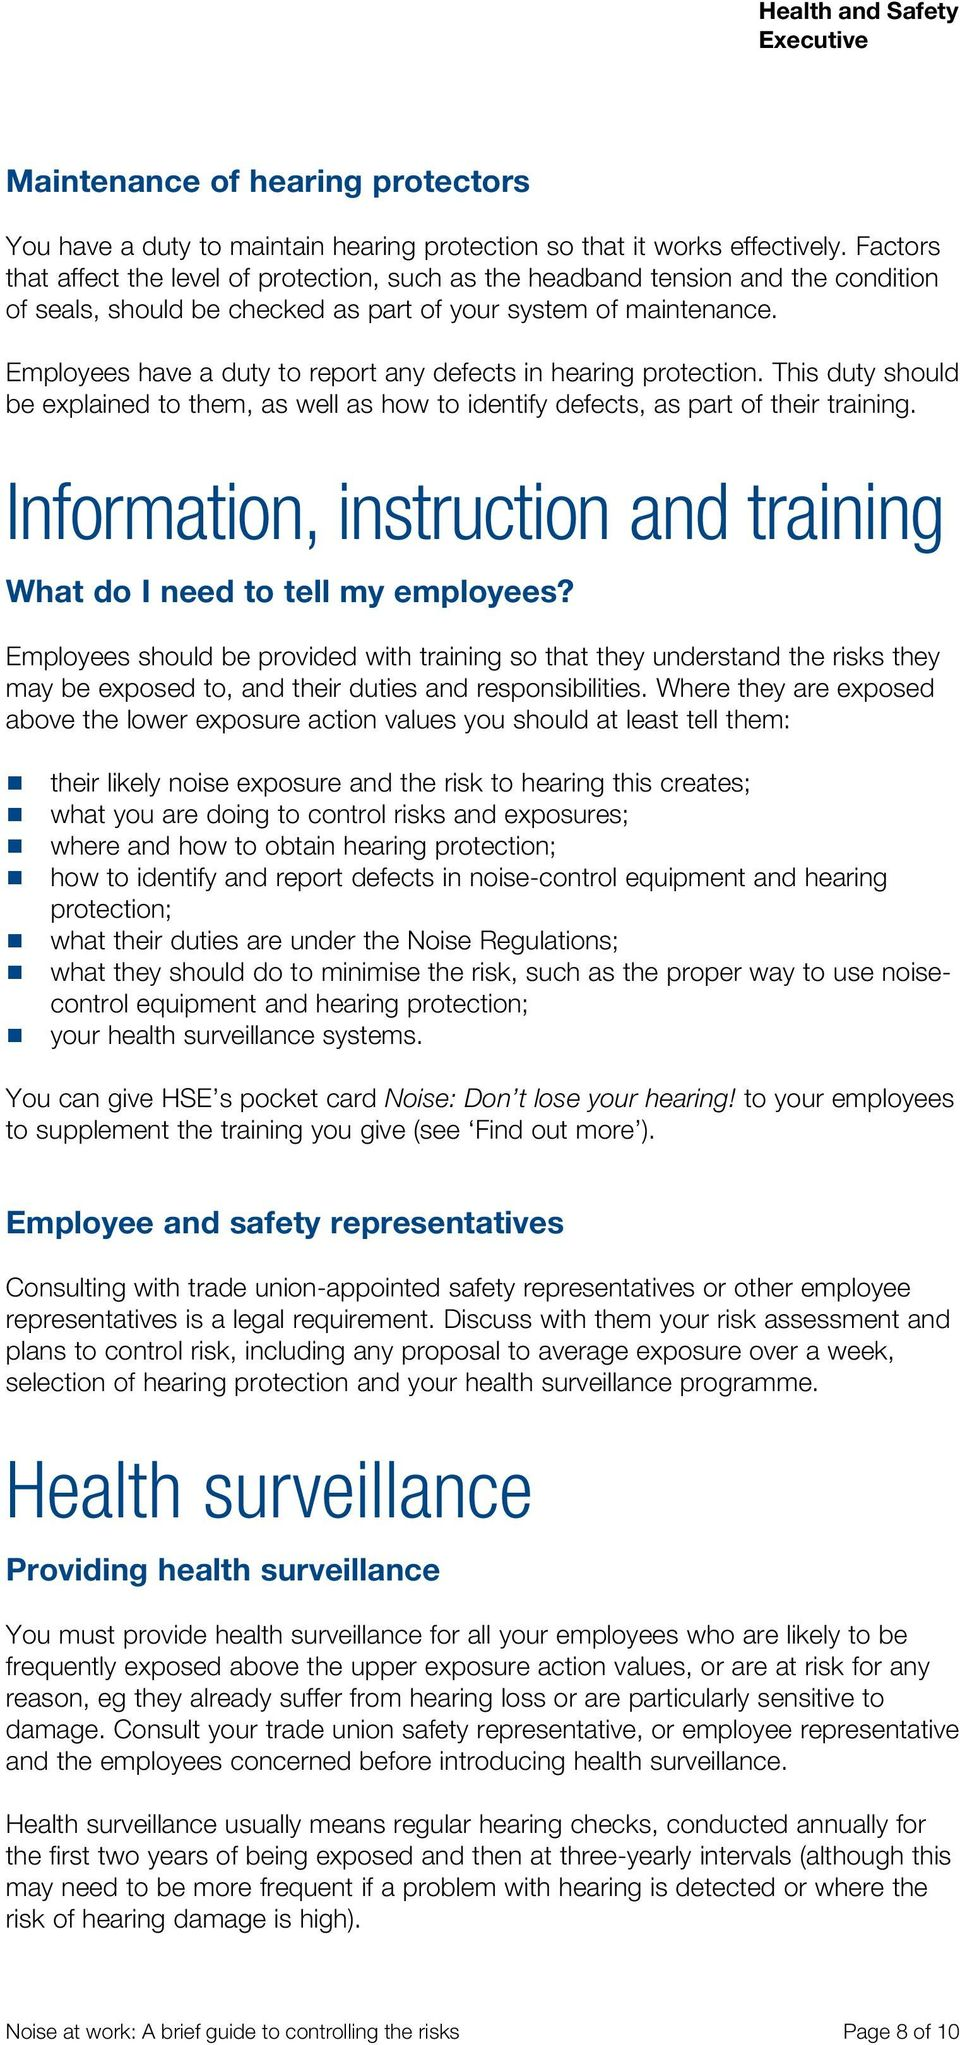 Employees have a duty to report any defects in hearing protection. This duty should be explained to them, as well as how to identify defects, as part of their training.